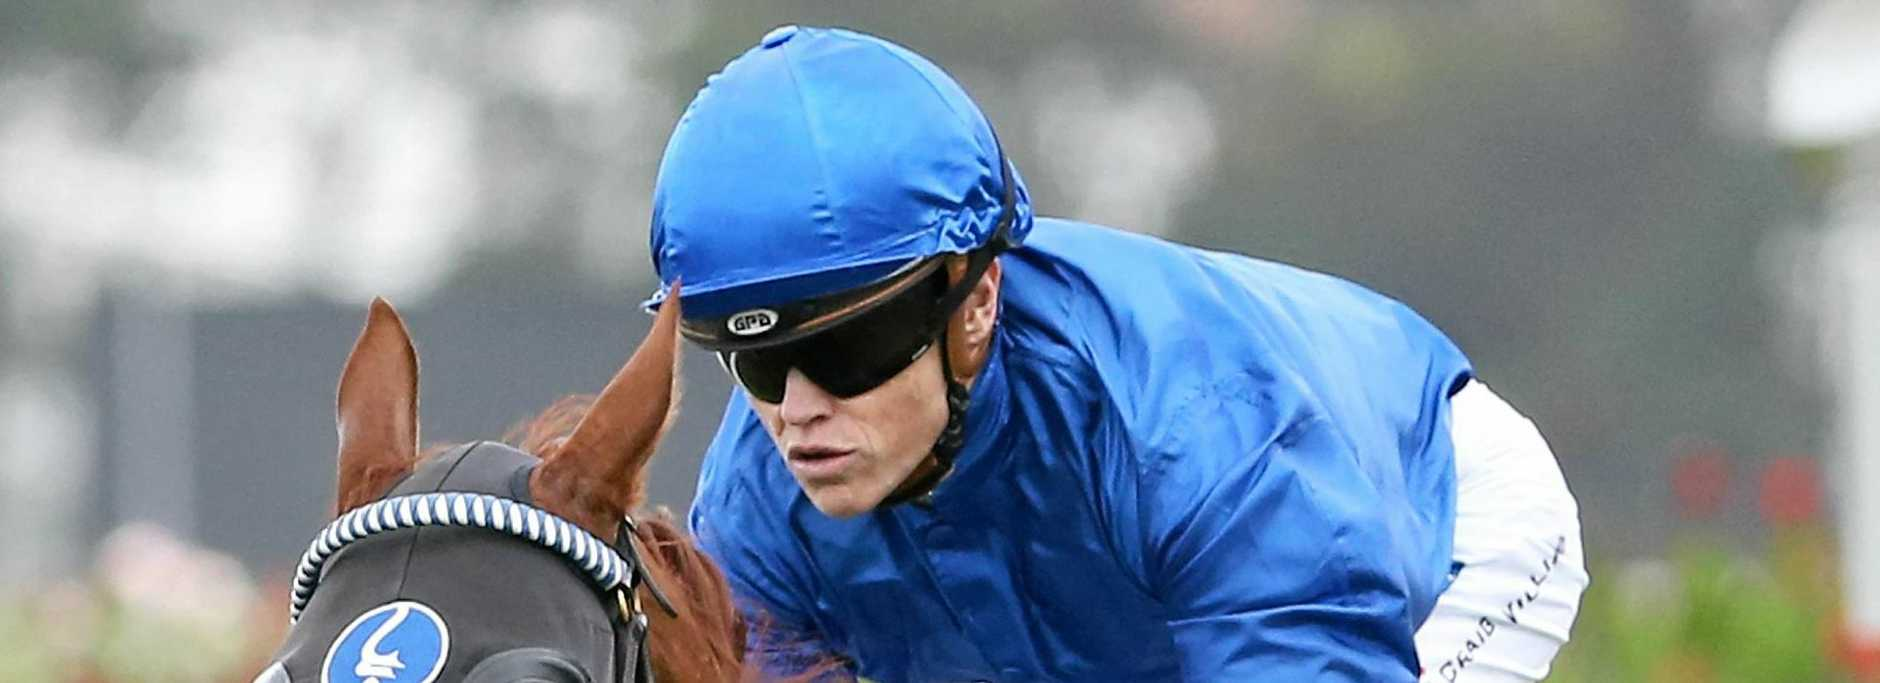 LUCKY: Jockey Craig Williams escaped serious injury in a fall after the winning post in Saturday's Mornington Cup.